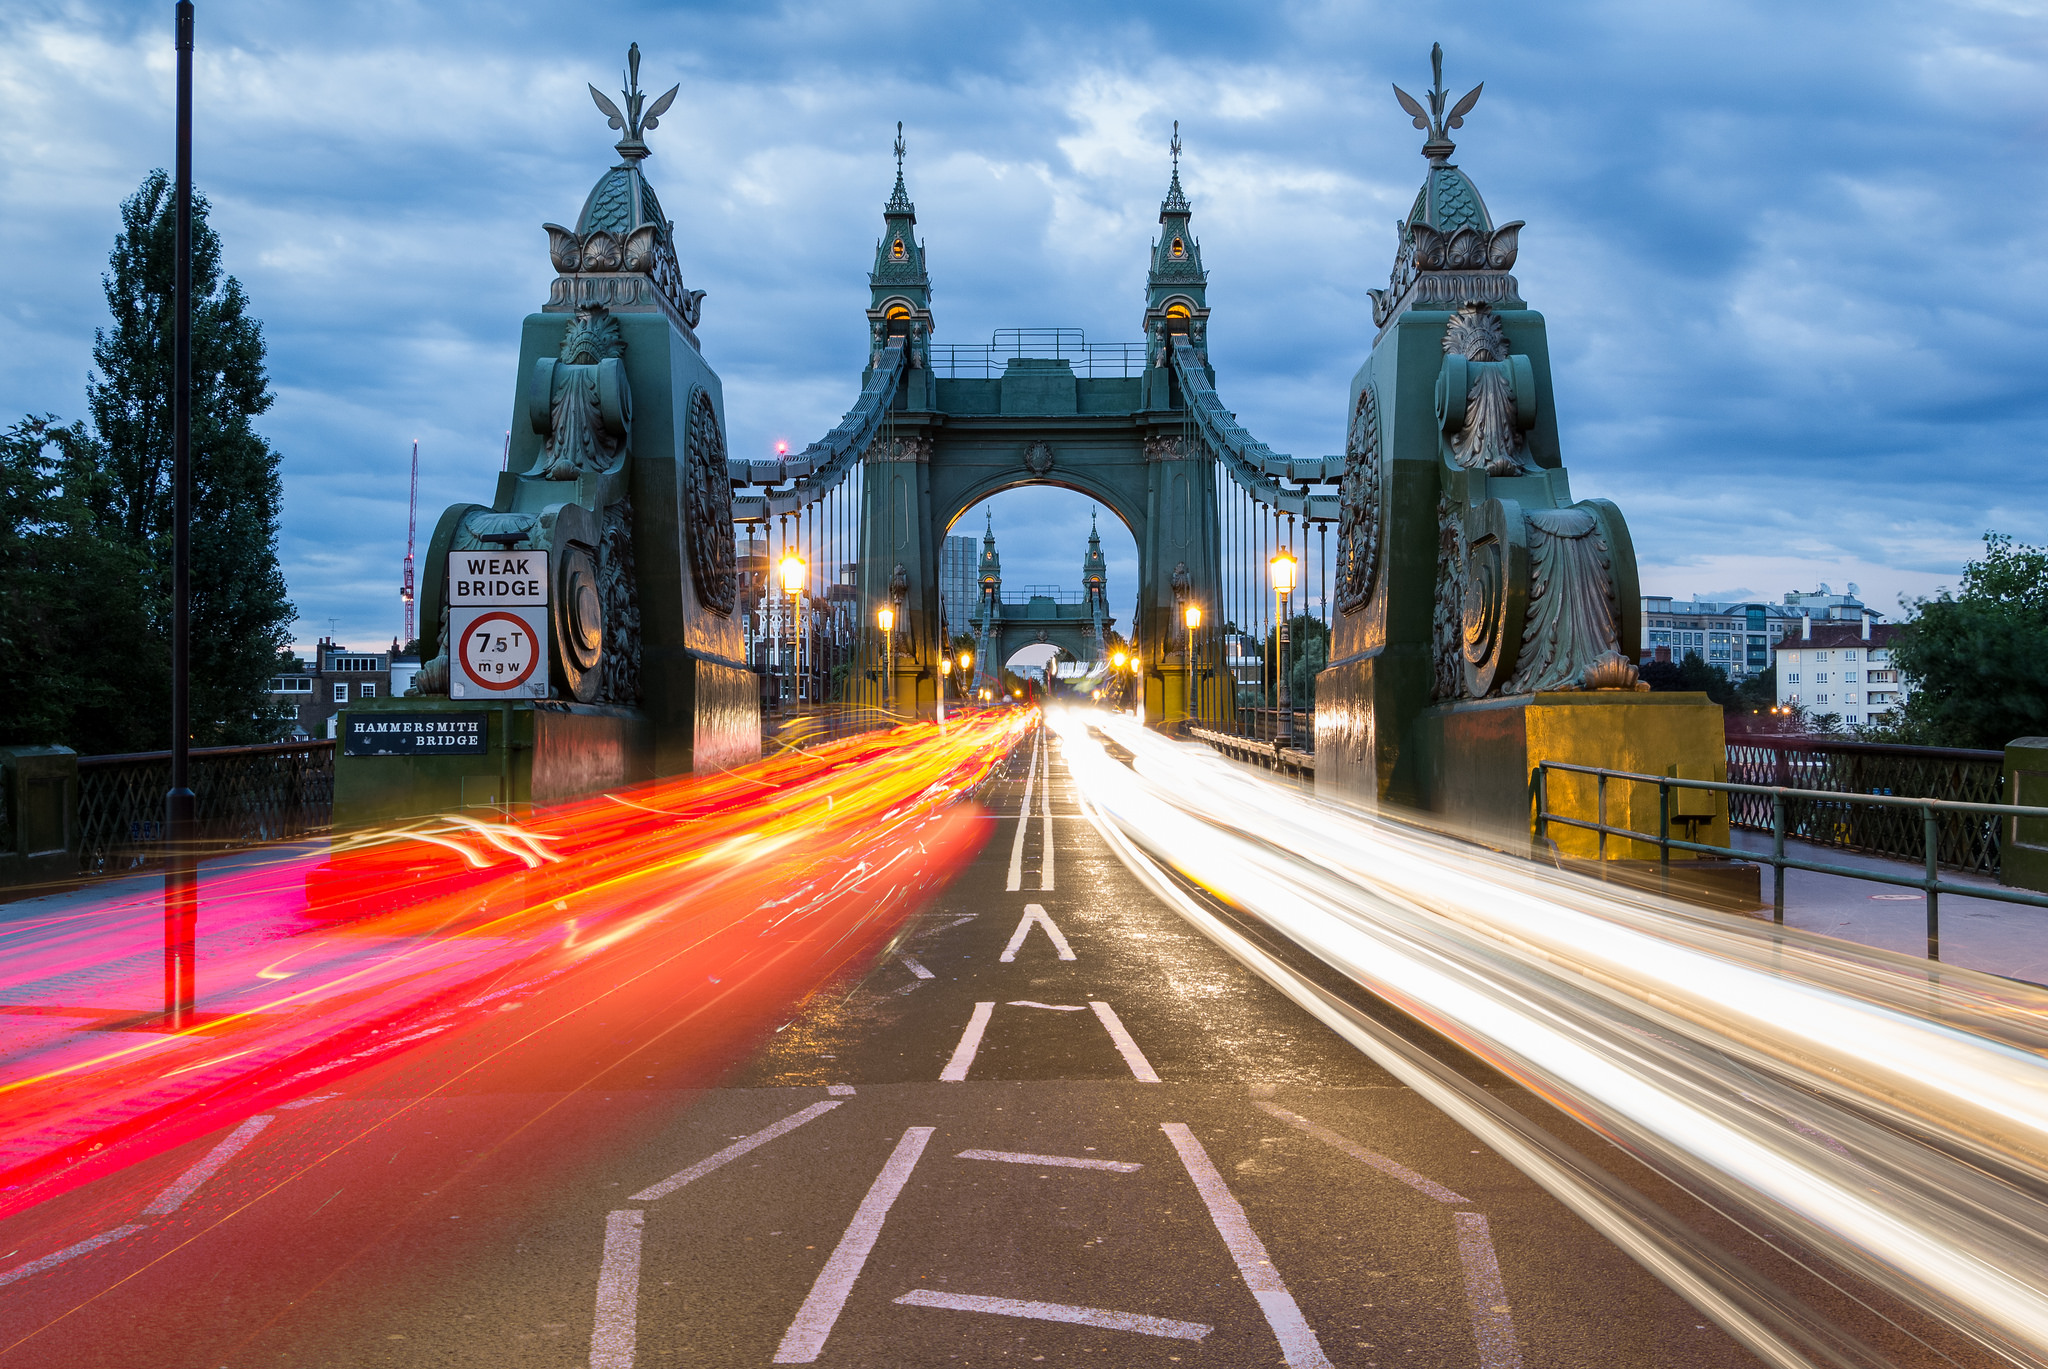 Hammersmith Bridge, England, London